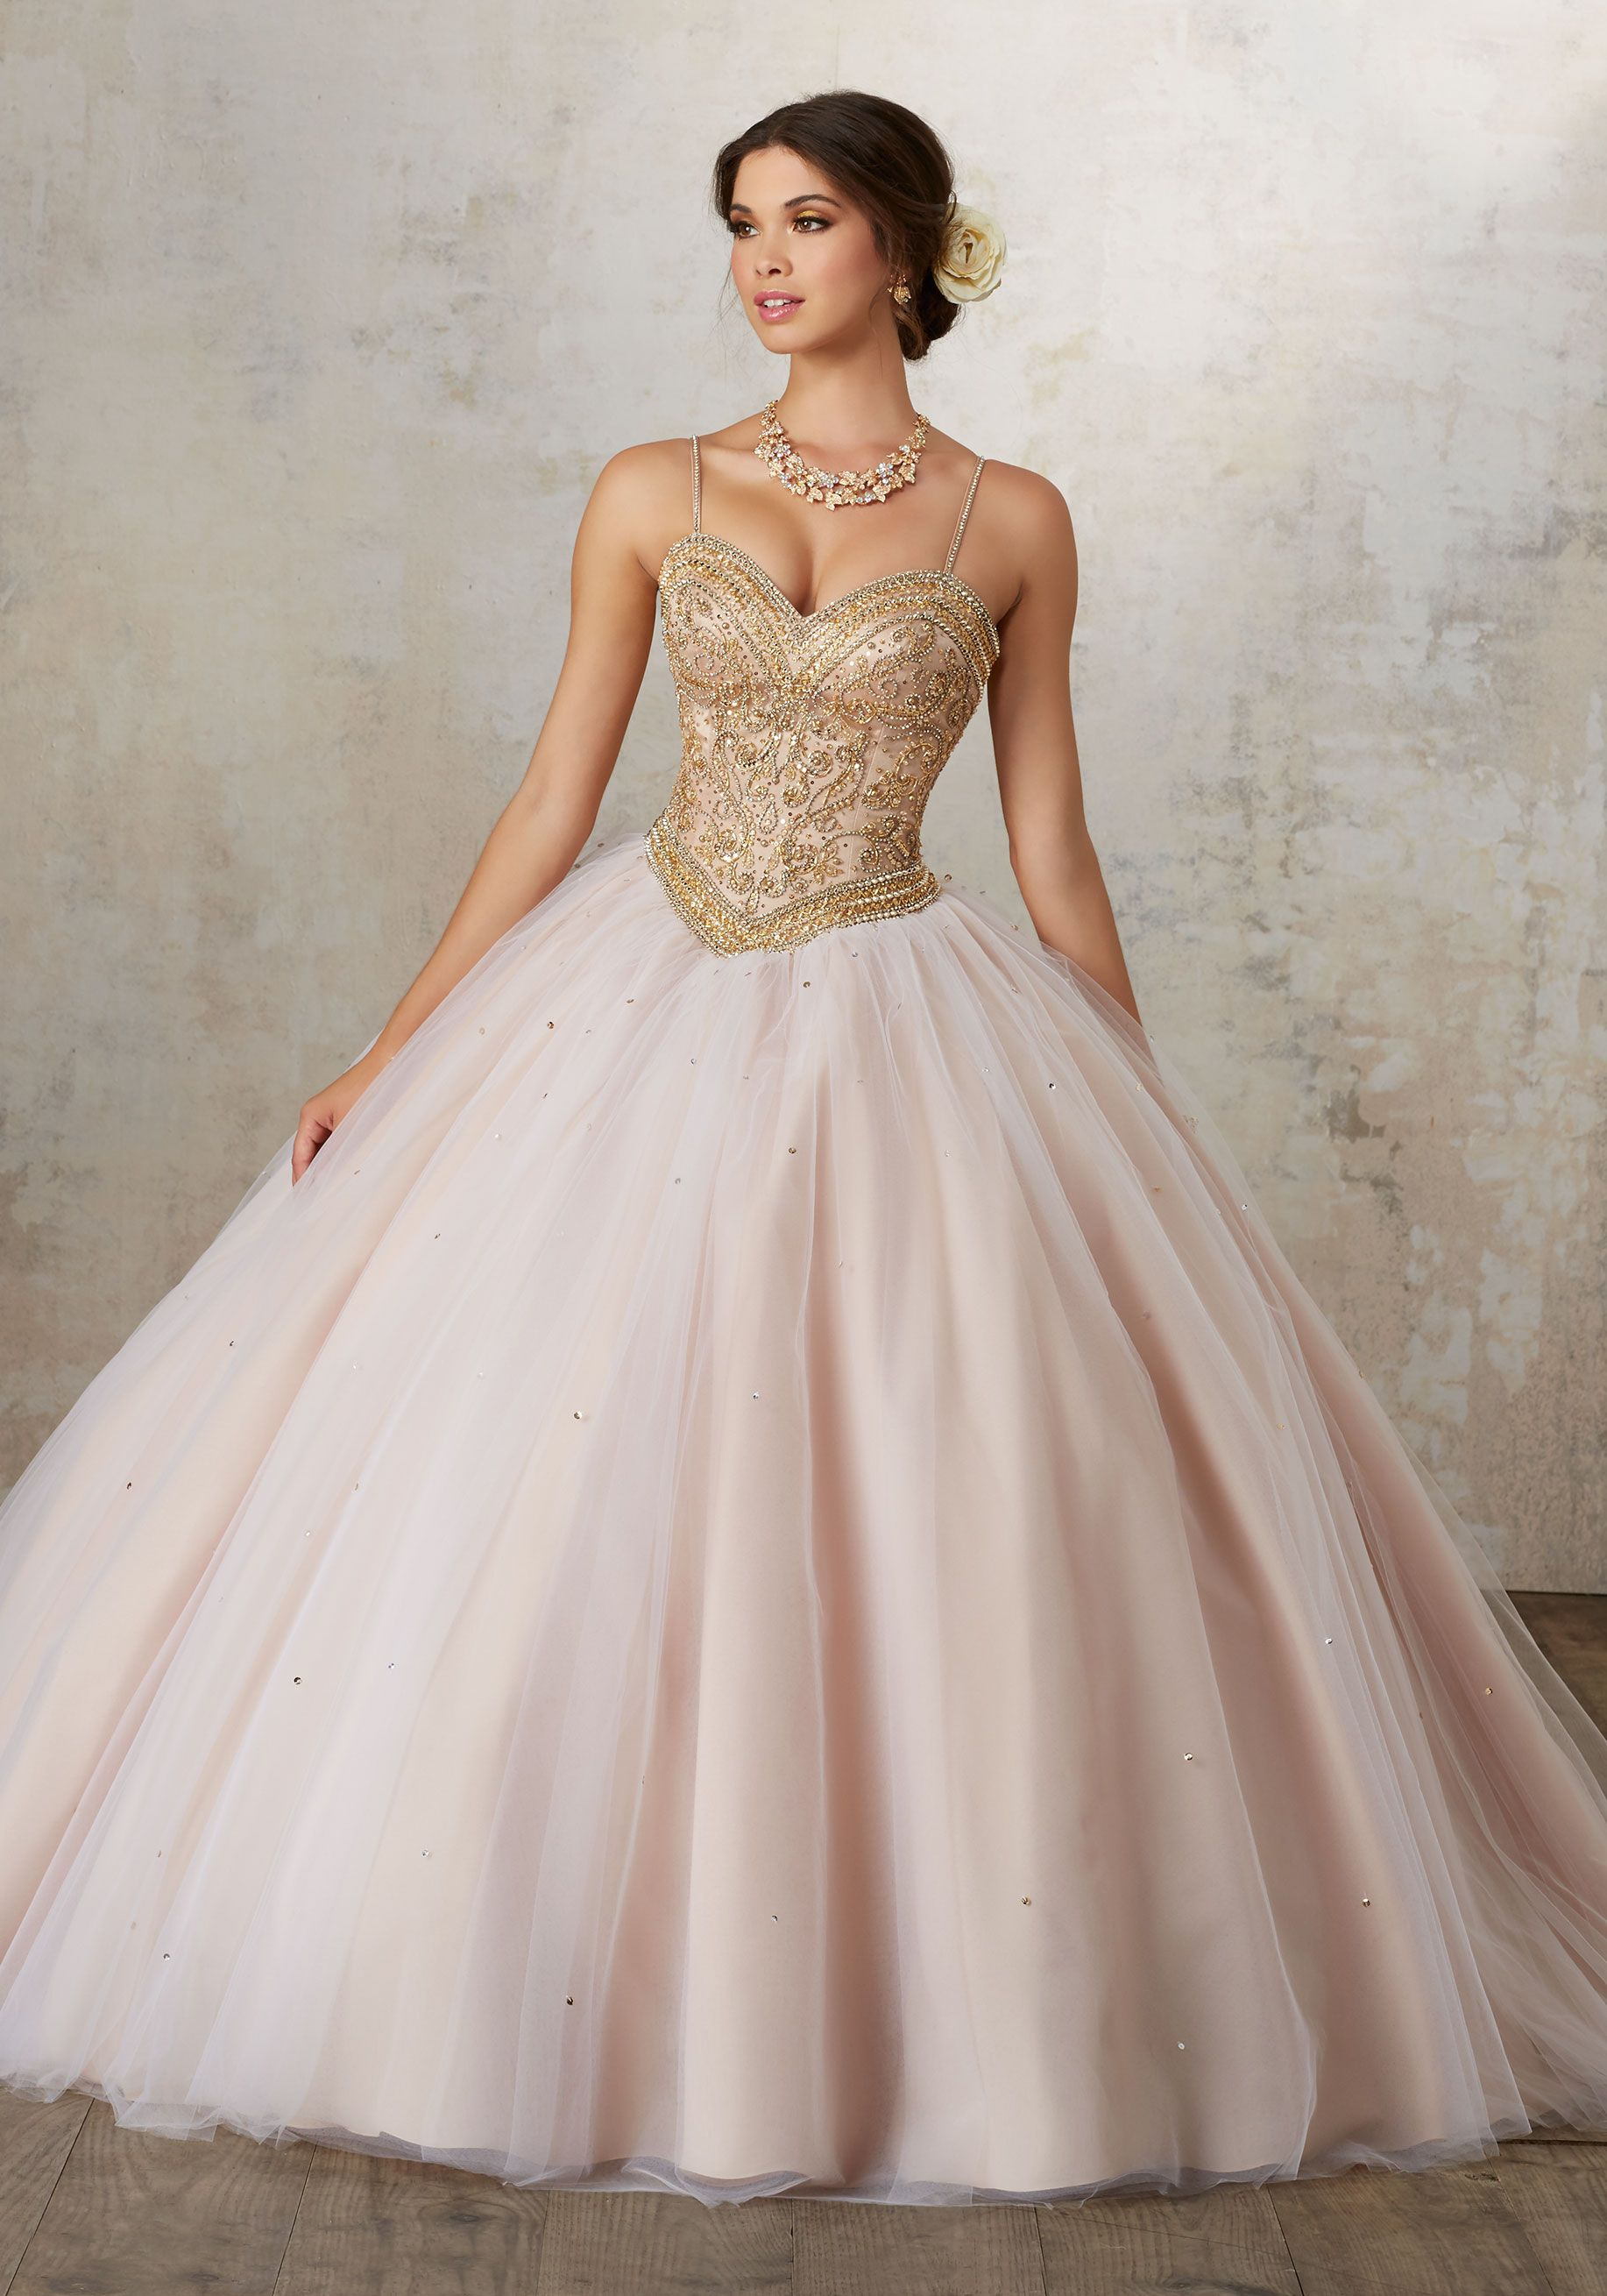 Morilee quinceanera dresses style number jeweled beading on a